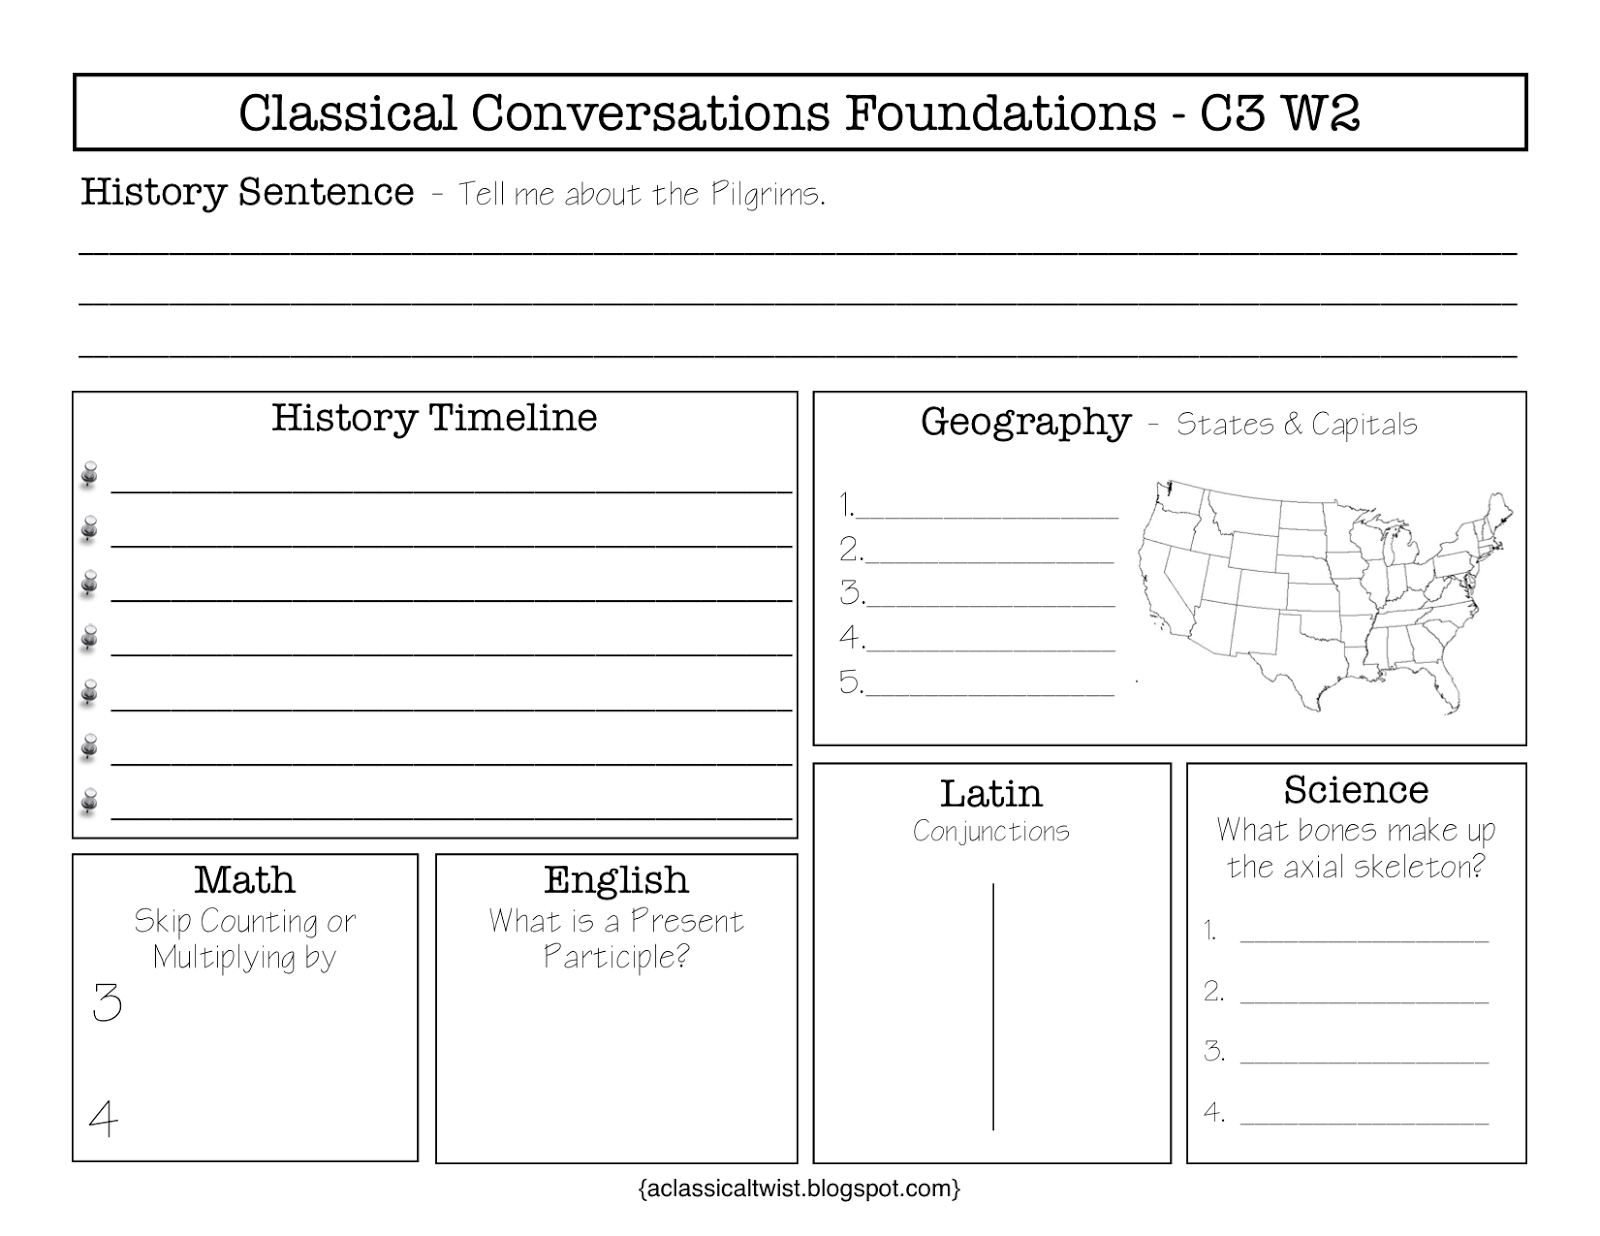 Blank Weekly Review Sheets For Classical Conversations